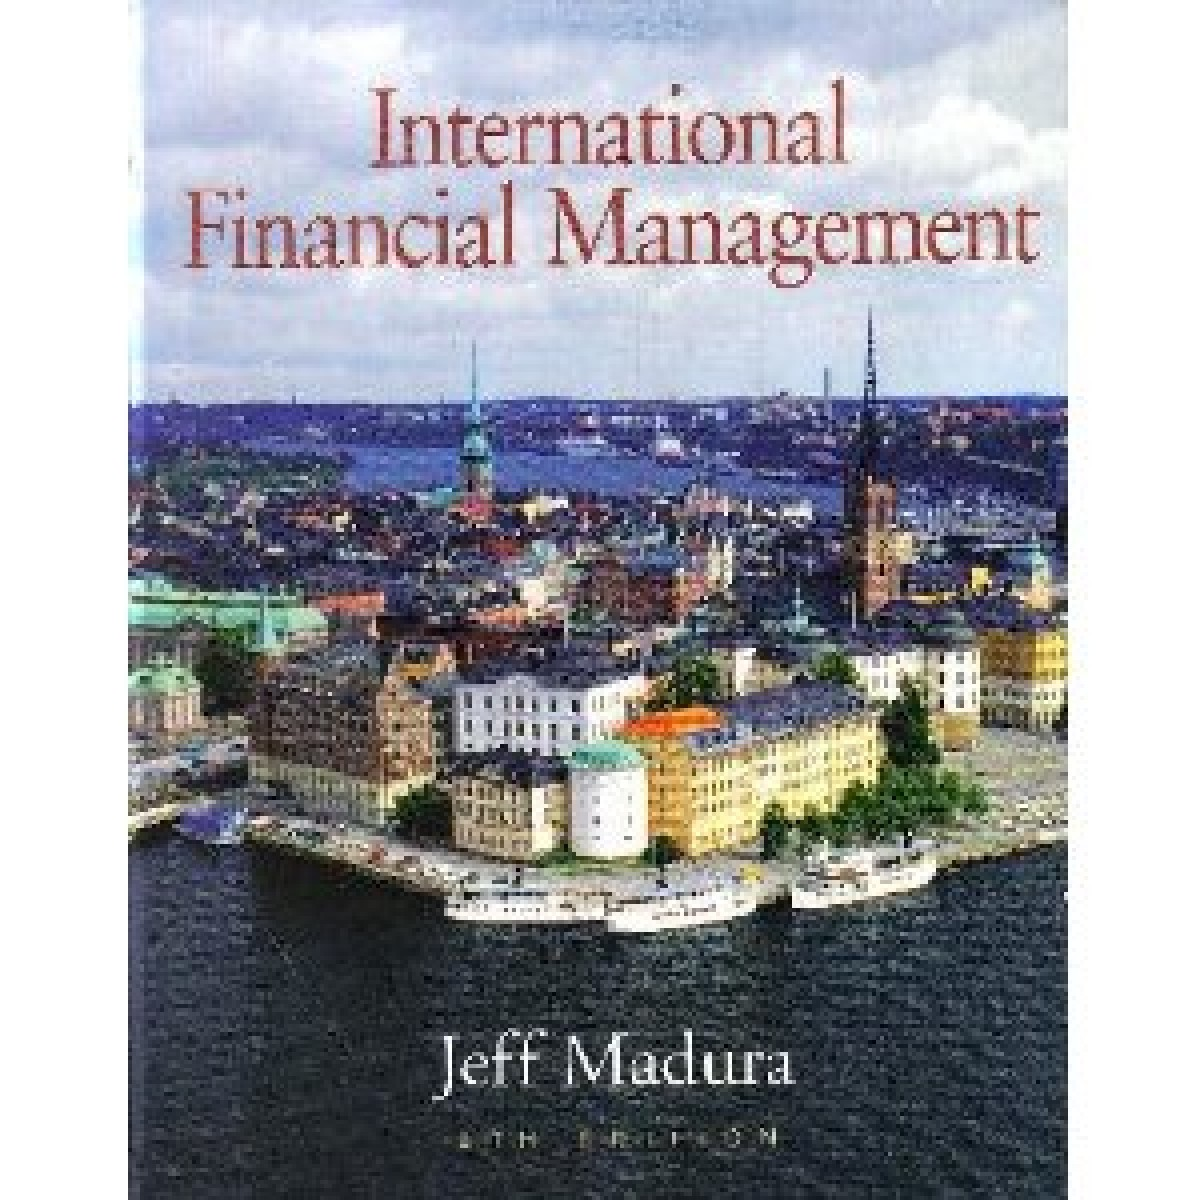 fina 370 internatonional financial management International financial management, semester course  one course each in  macro- and microeconomics, and one finance course, all at university level.